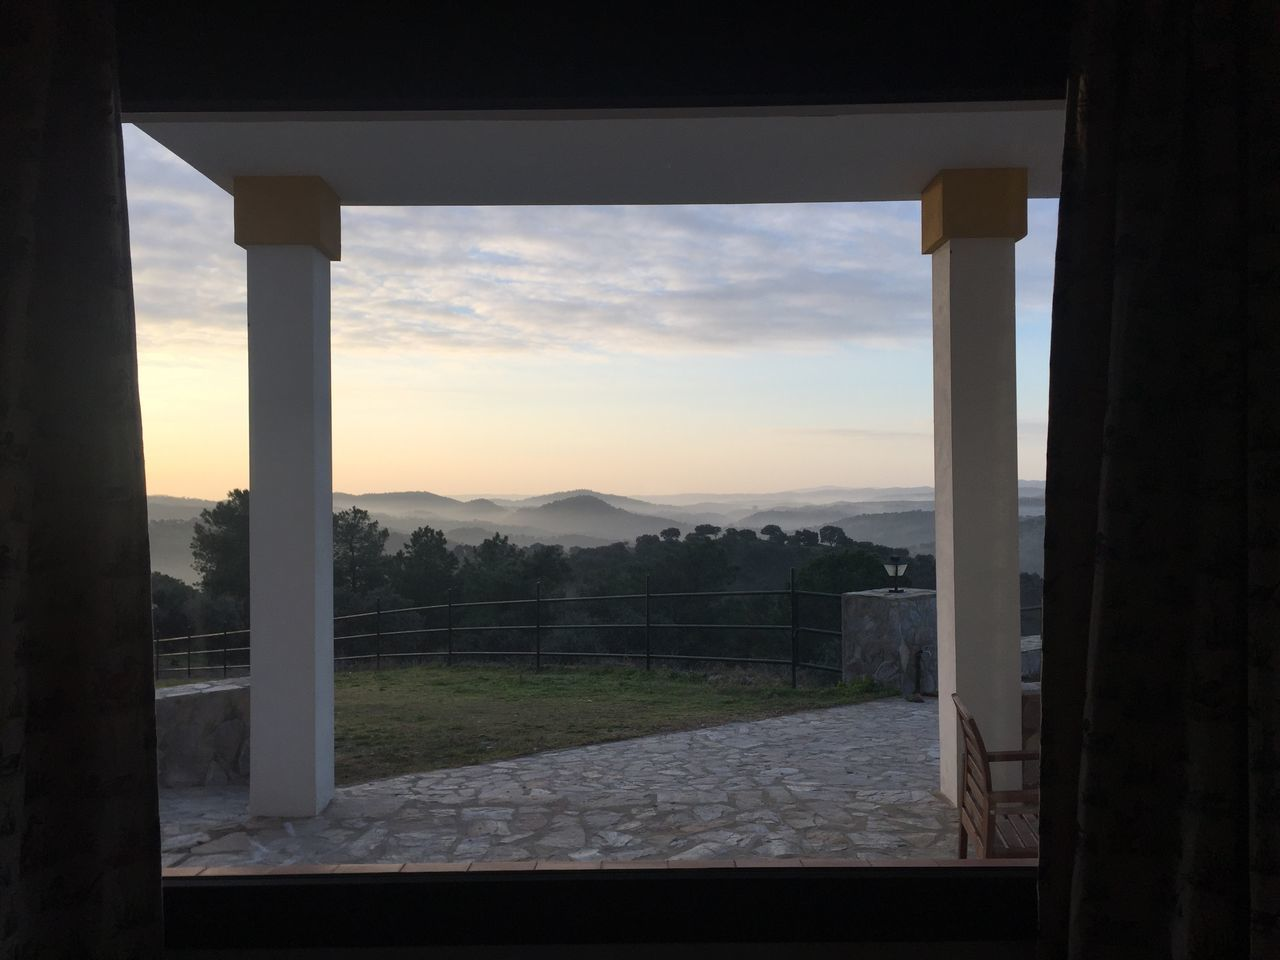 window, sky, sunset, indoors, nature, no people, open, mountain, scenics, built structure, beauty in nature, landscape, day, tree